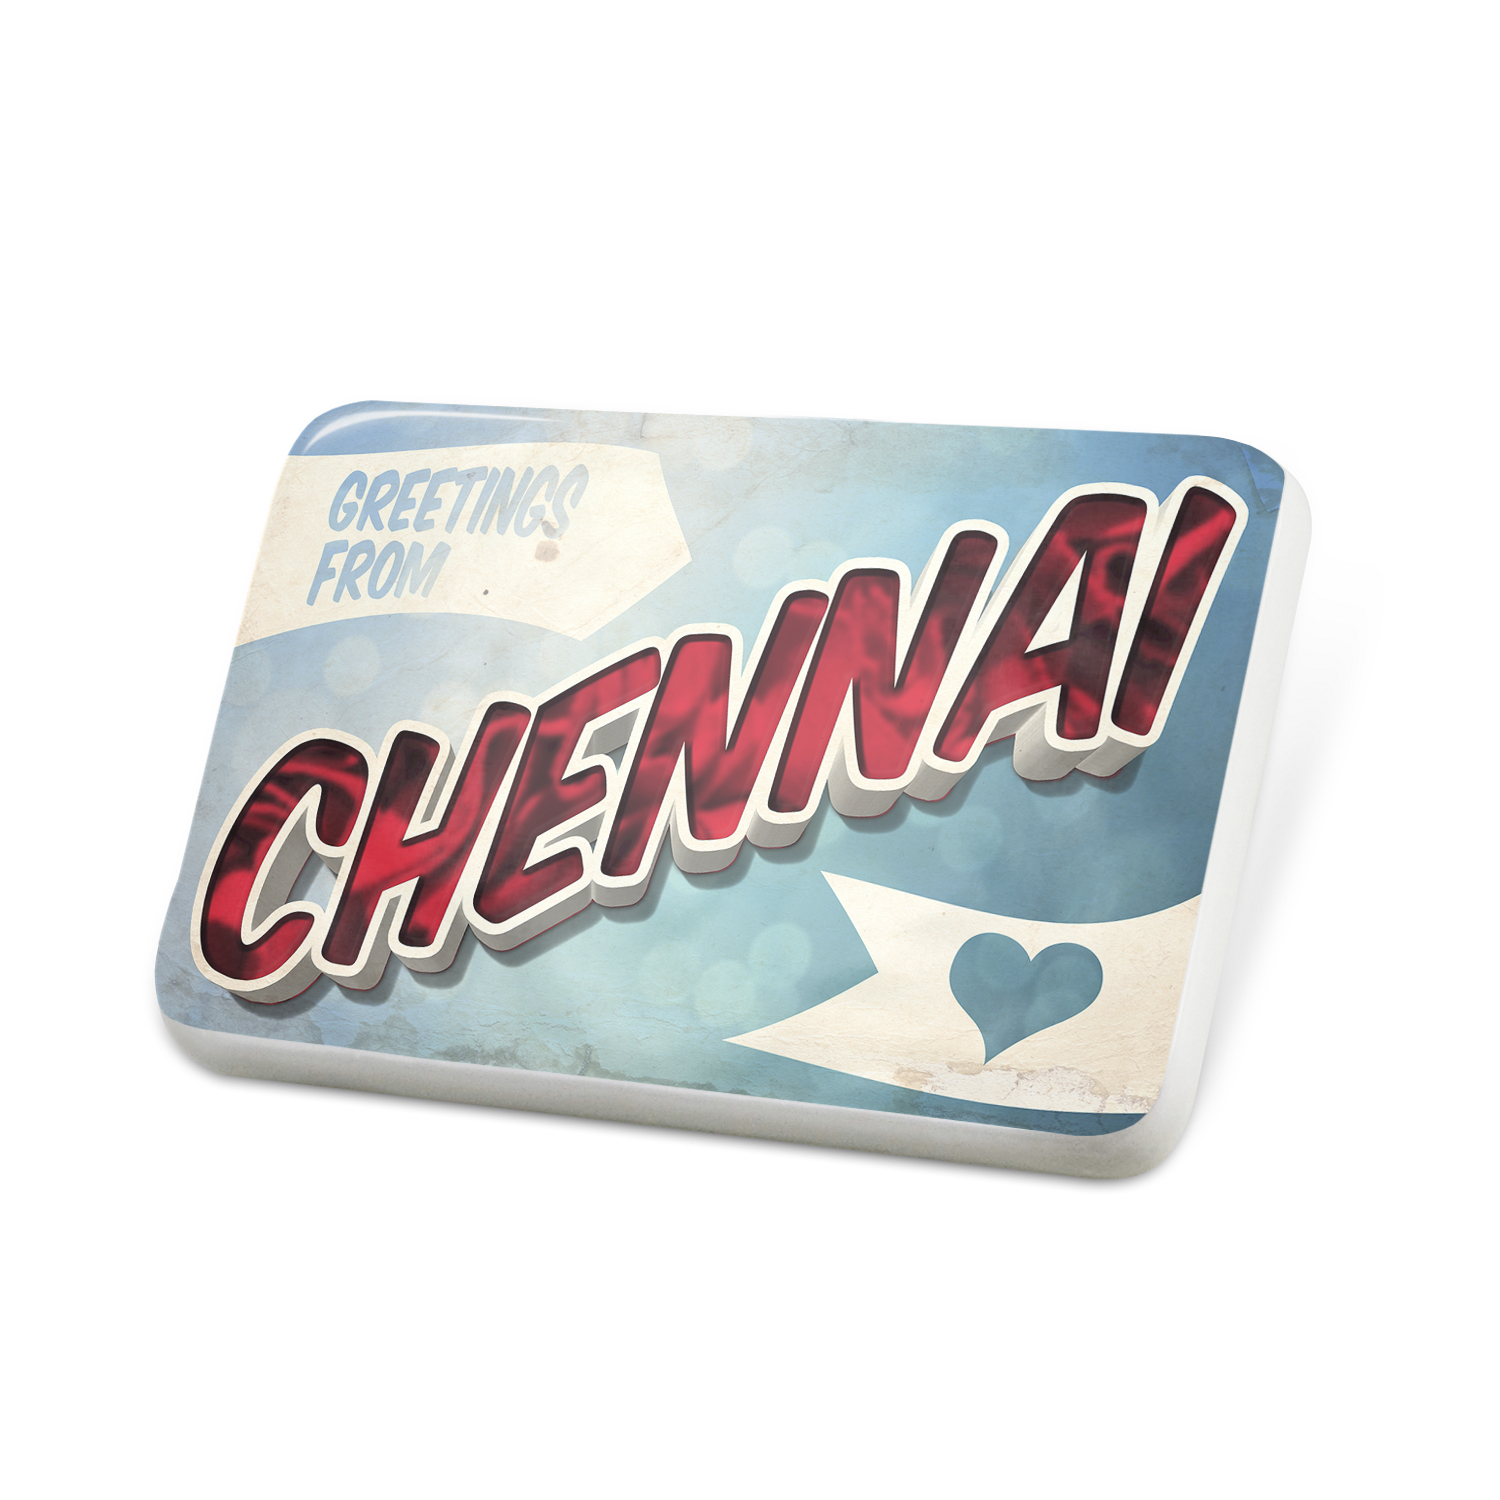 Porcelein Pin Greetings from Chennai, Vintage Postcard Lapel Badge – NEONBLOND